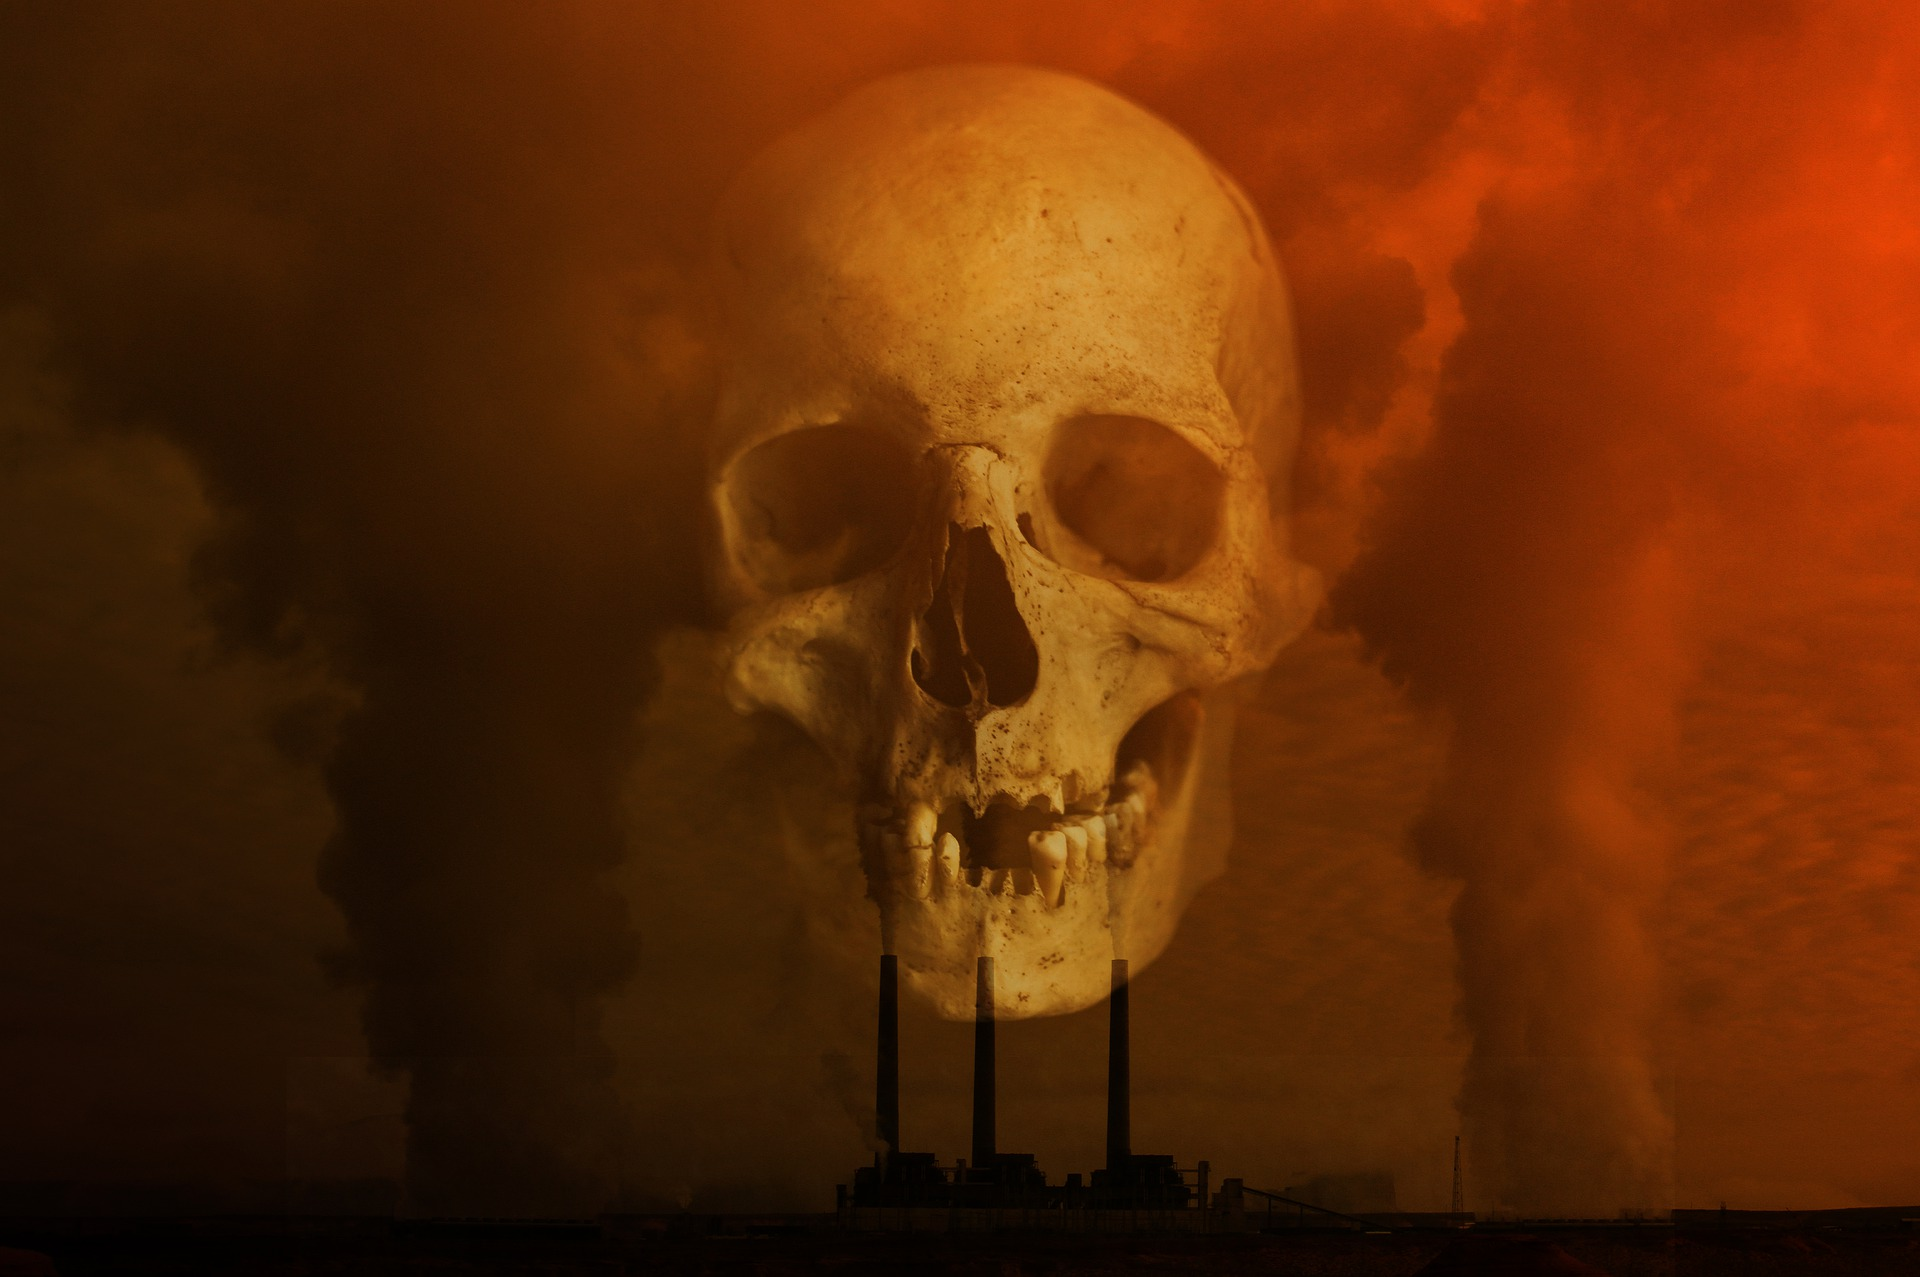 Image of pollution and a superimposed scull to illustrate fossil fuels